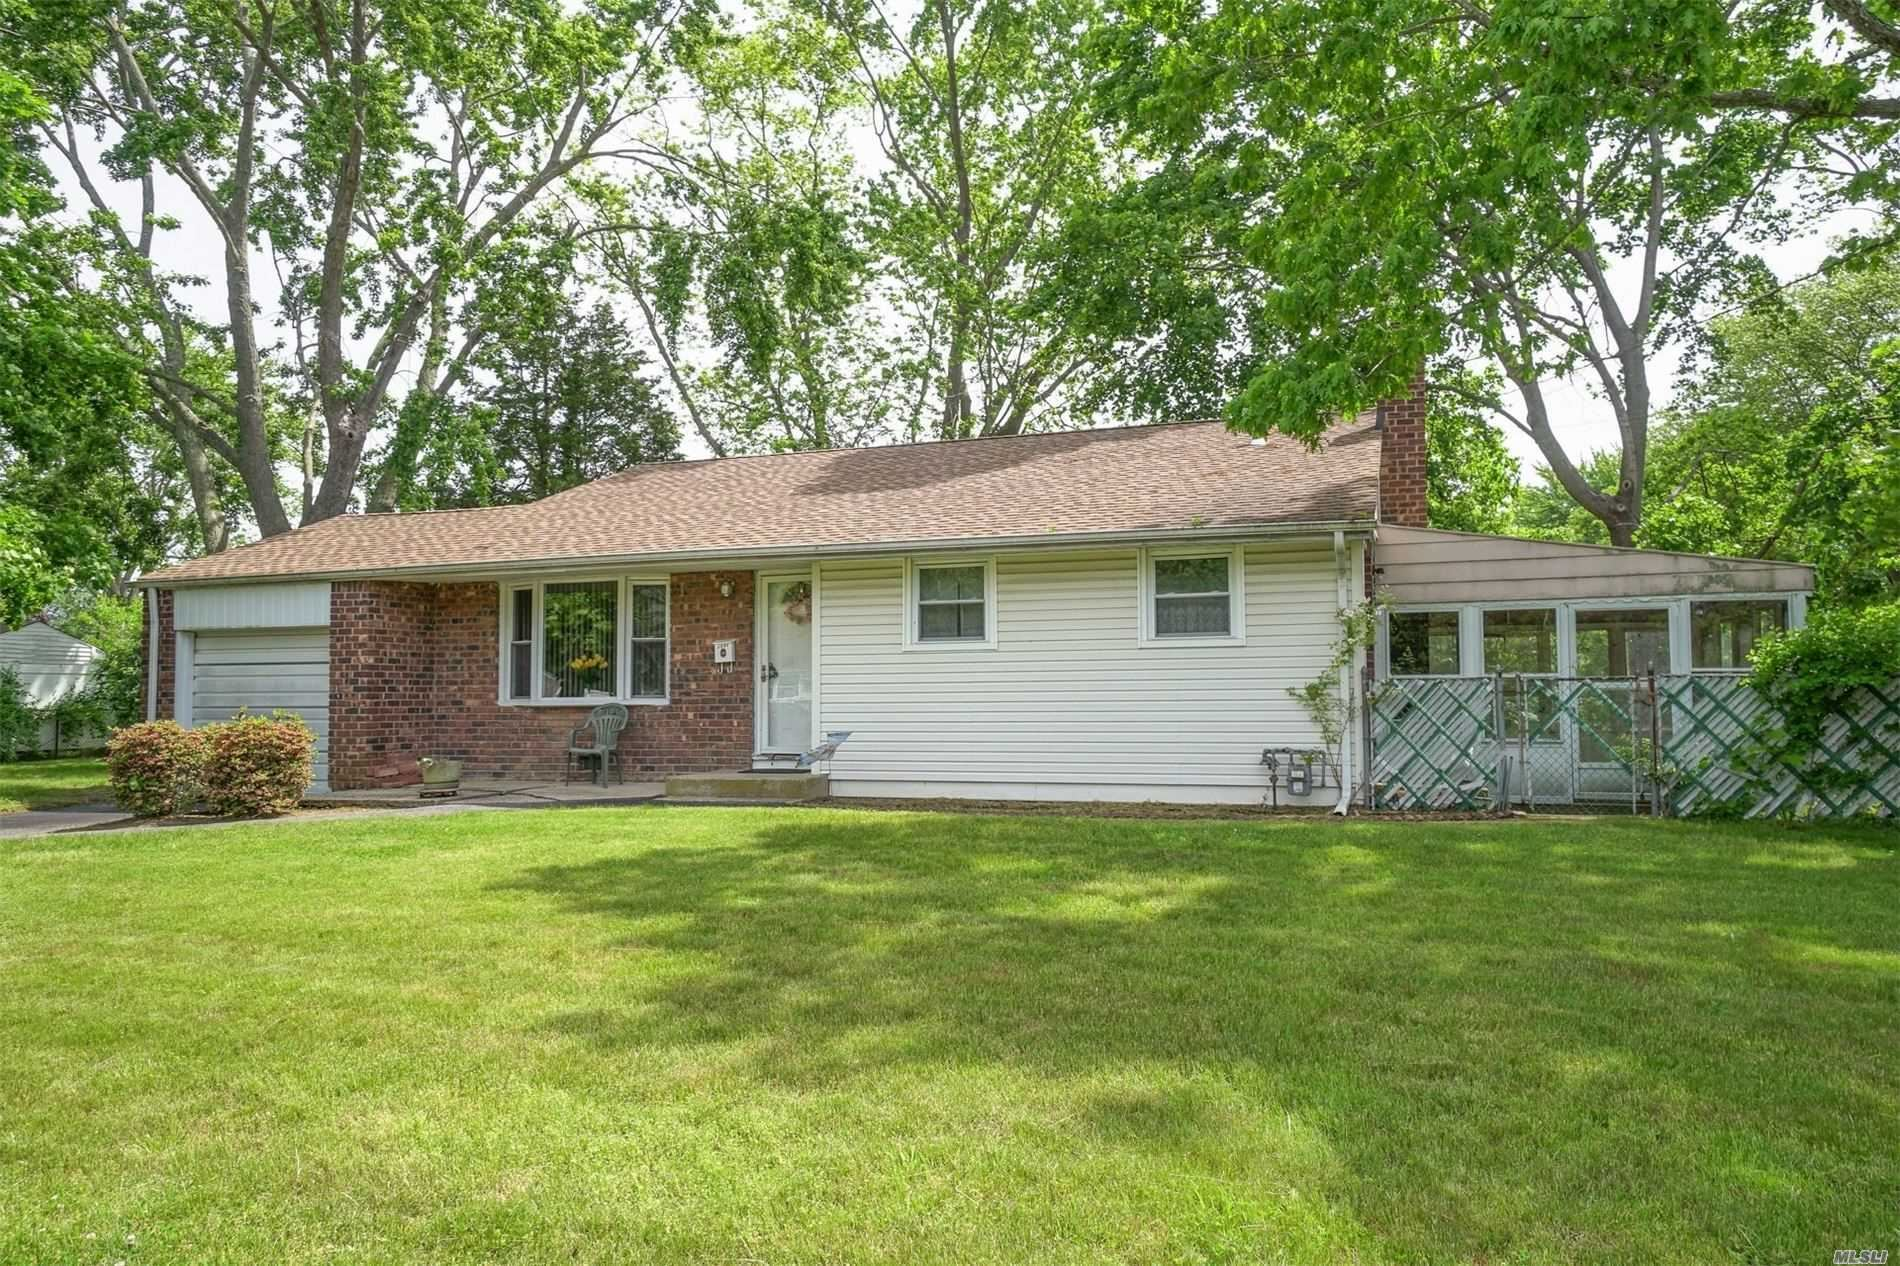 1541 Potter Boulevard, Bay Shore, NY 11706 - MLS#: 3223179